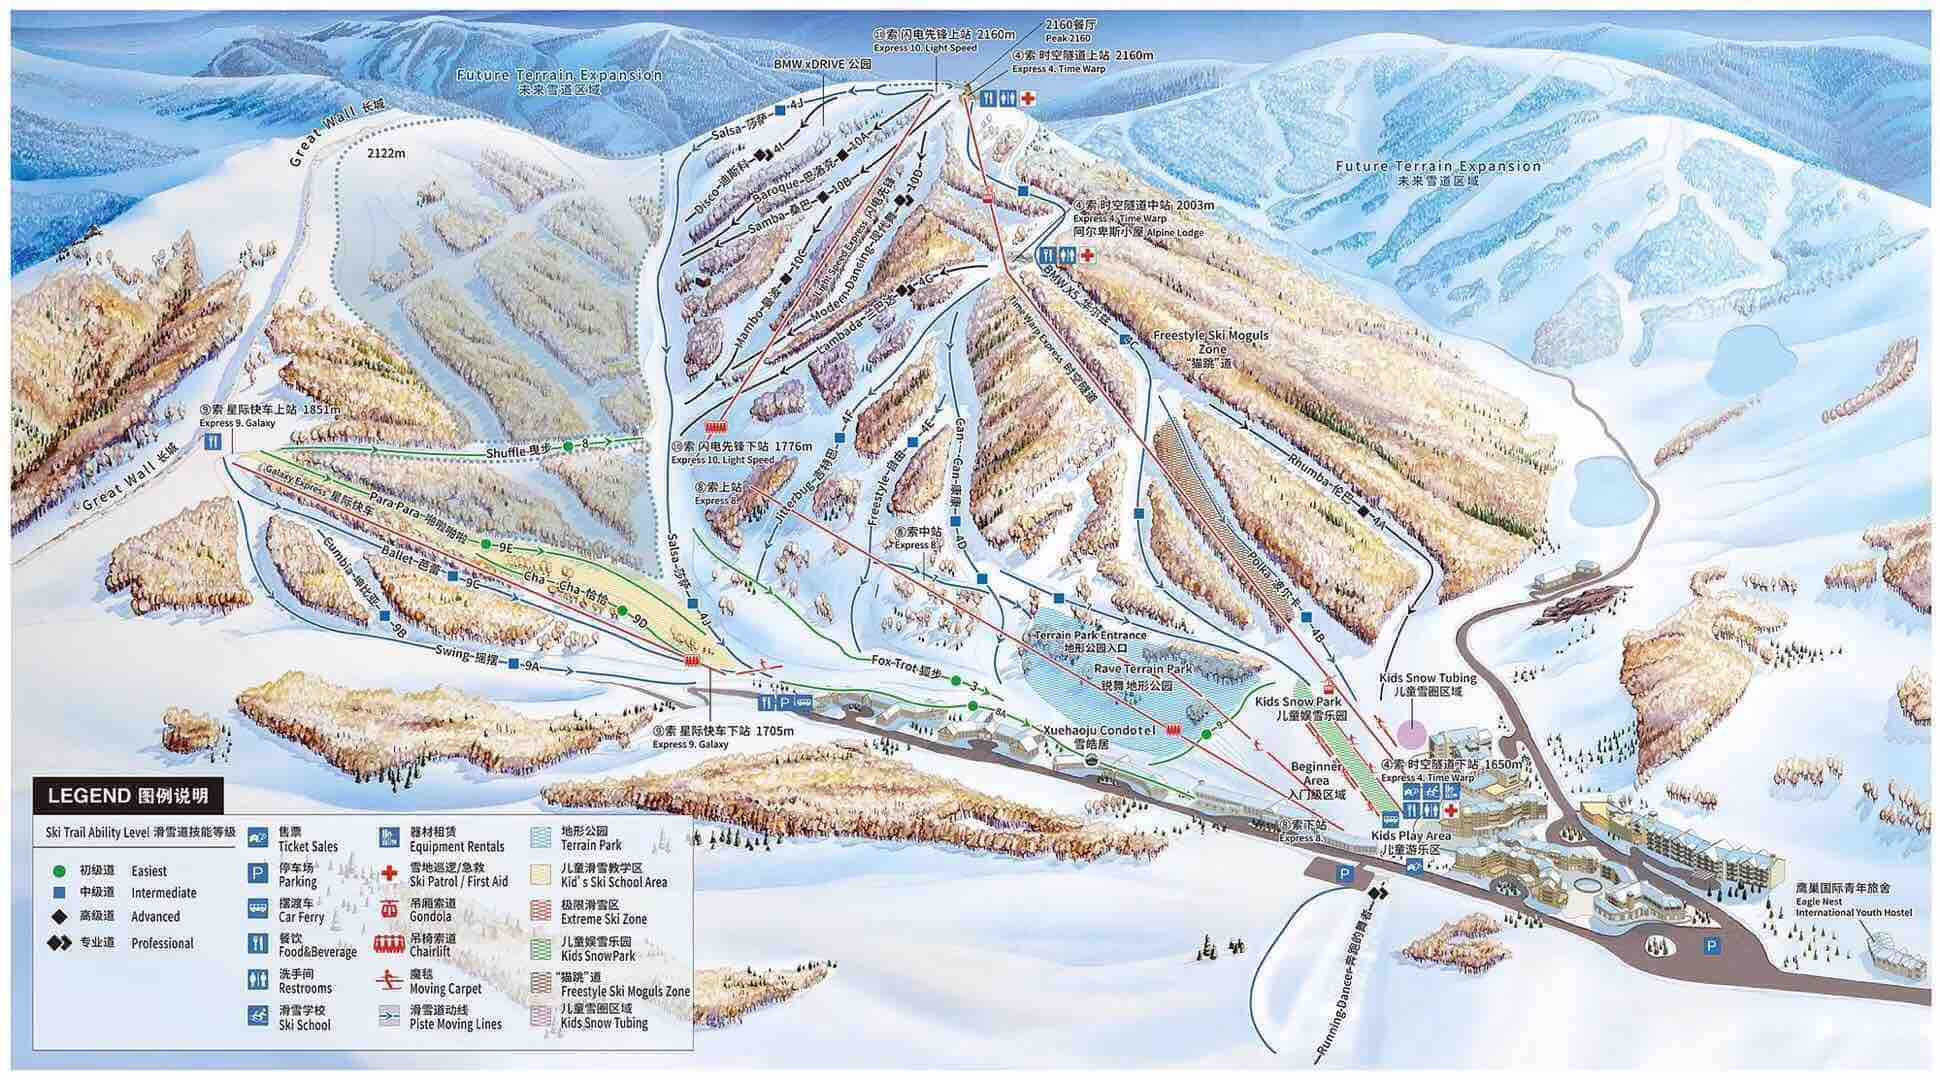 China Ski Resort: Thaiwoo Slopes